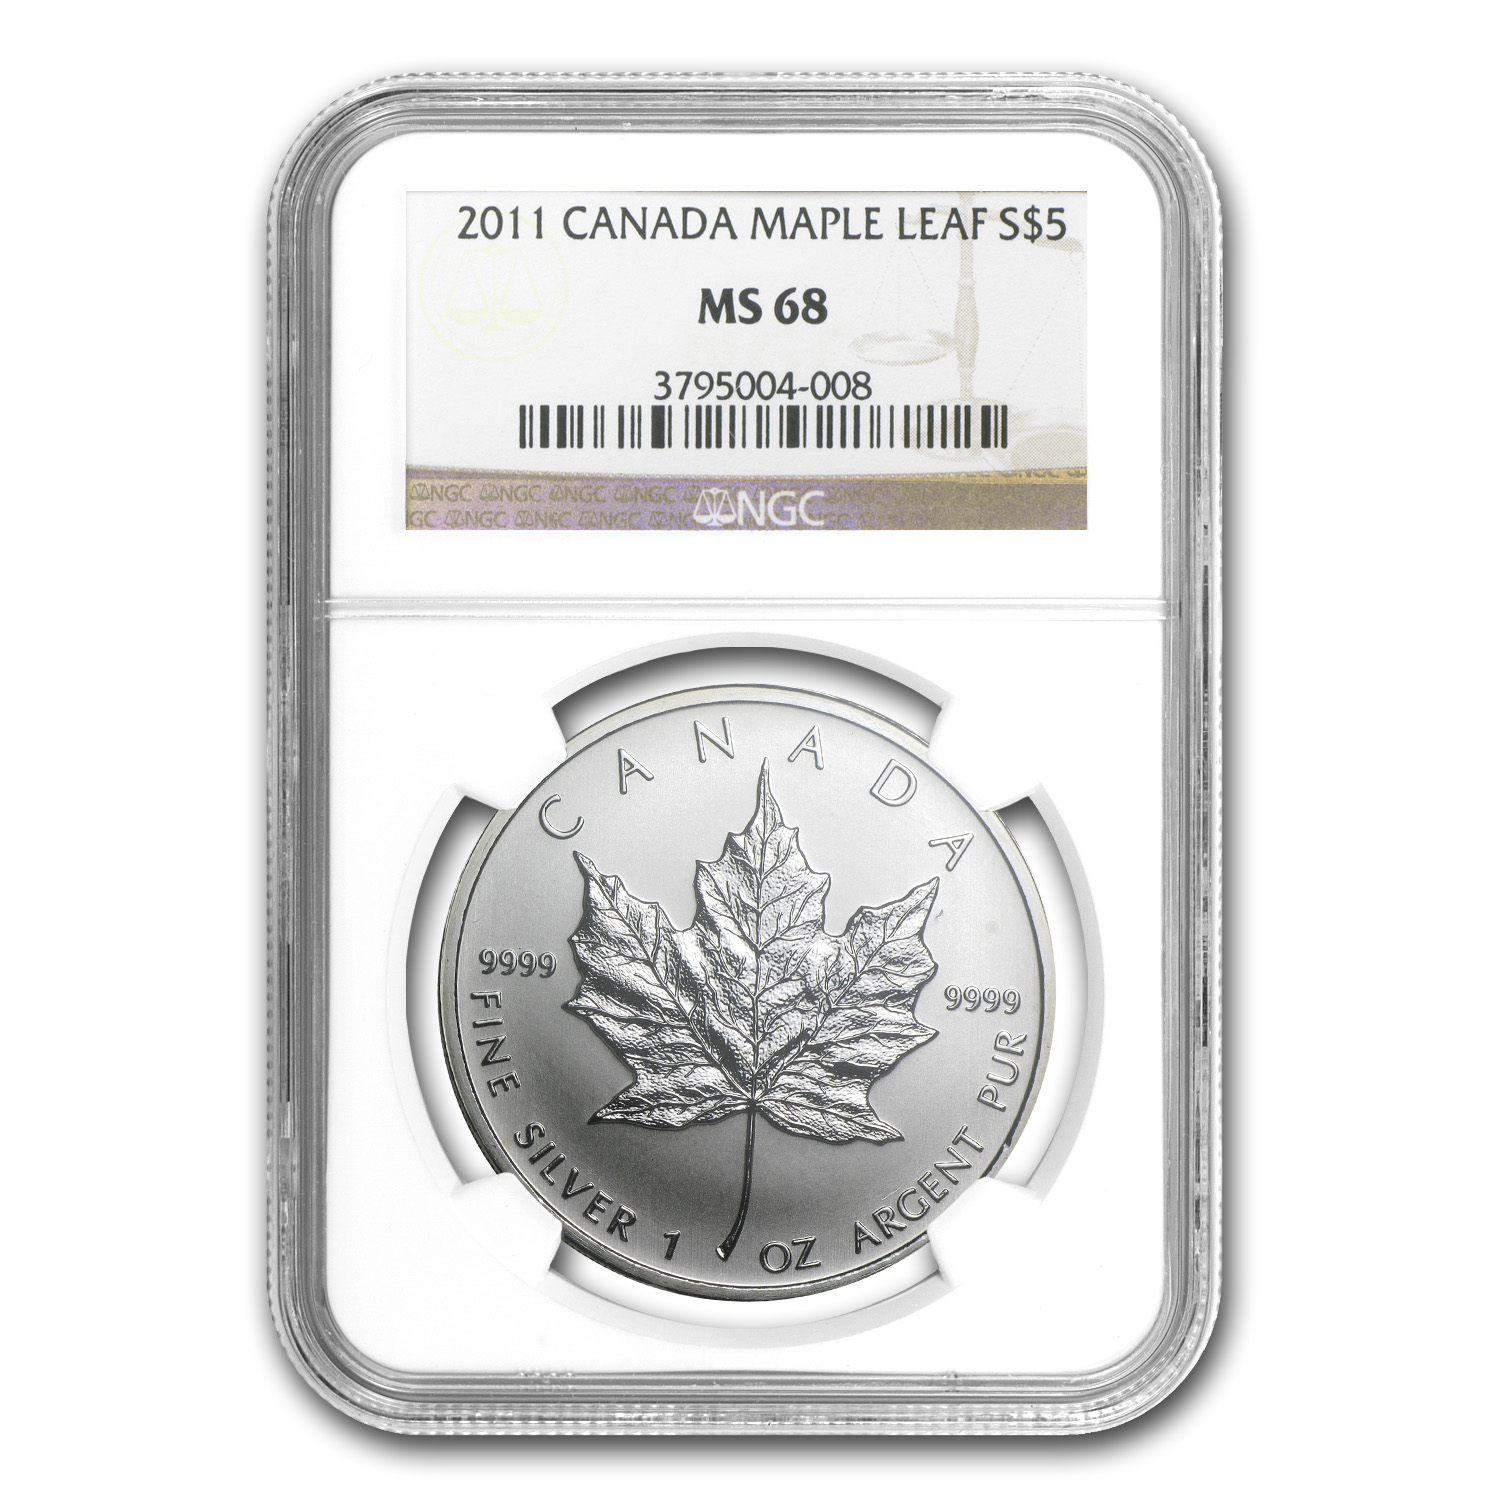 2011 Canada 1 oz Silver Maple Leaf MS-68 NGC